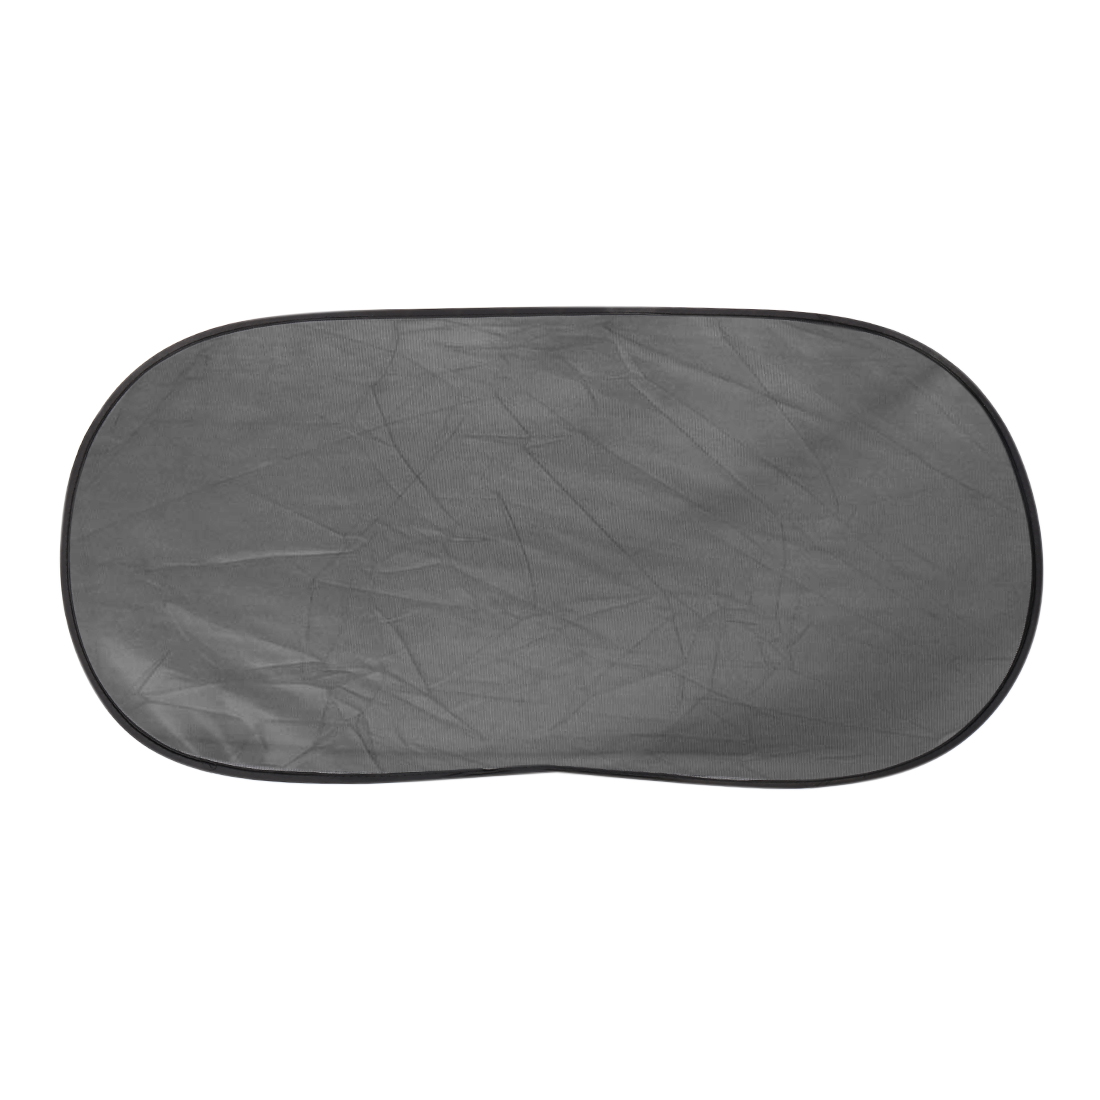 "Car Automobile Black Nylon Meshy Rear Window Sunshade Protector 39.4"" x 19.7"""